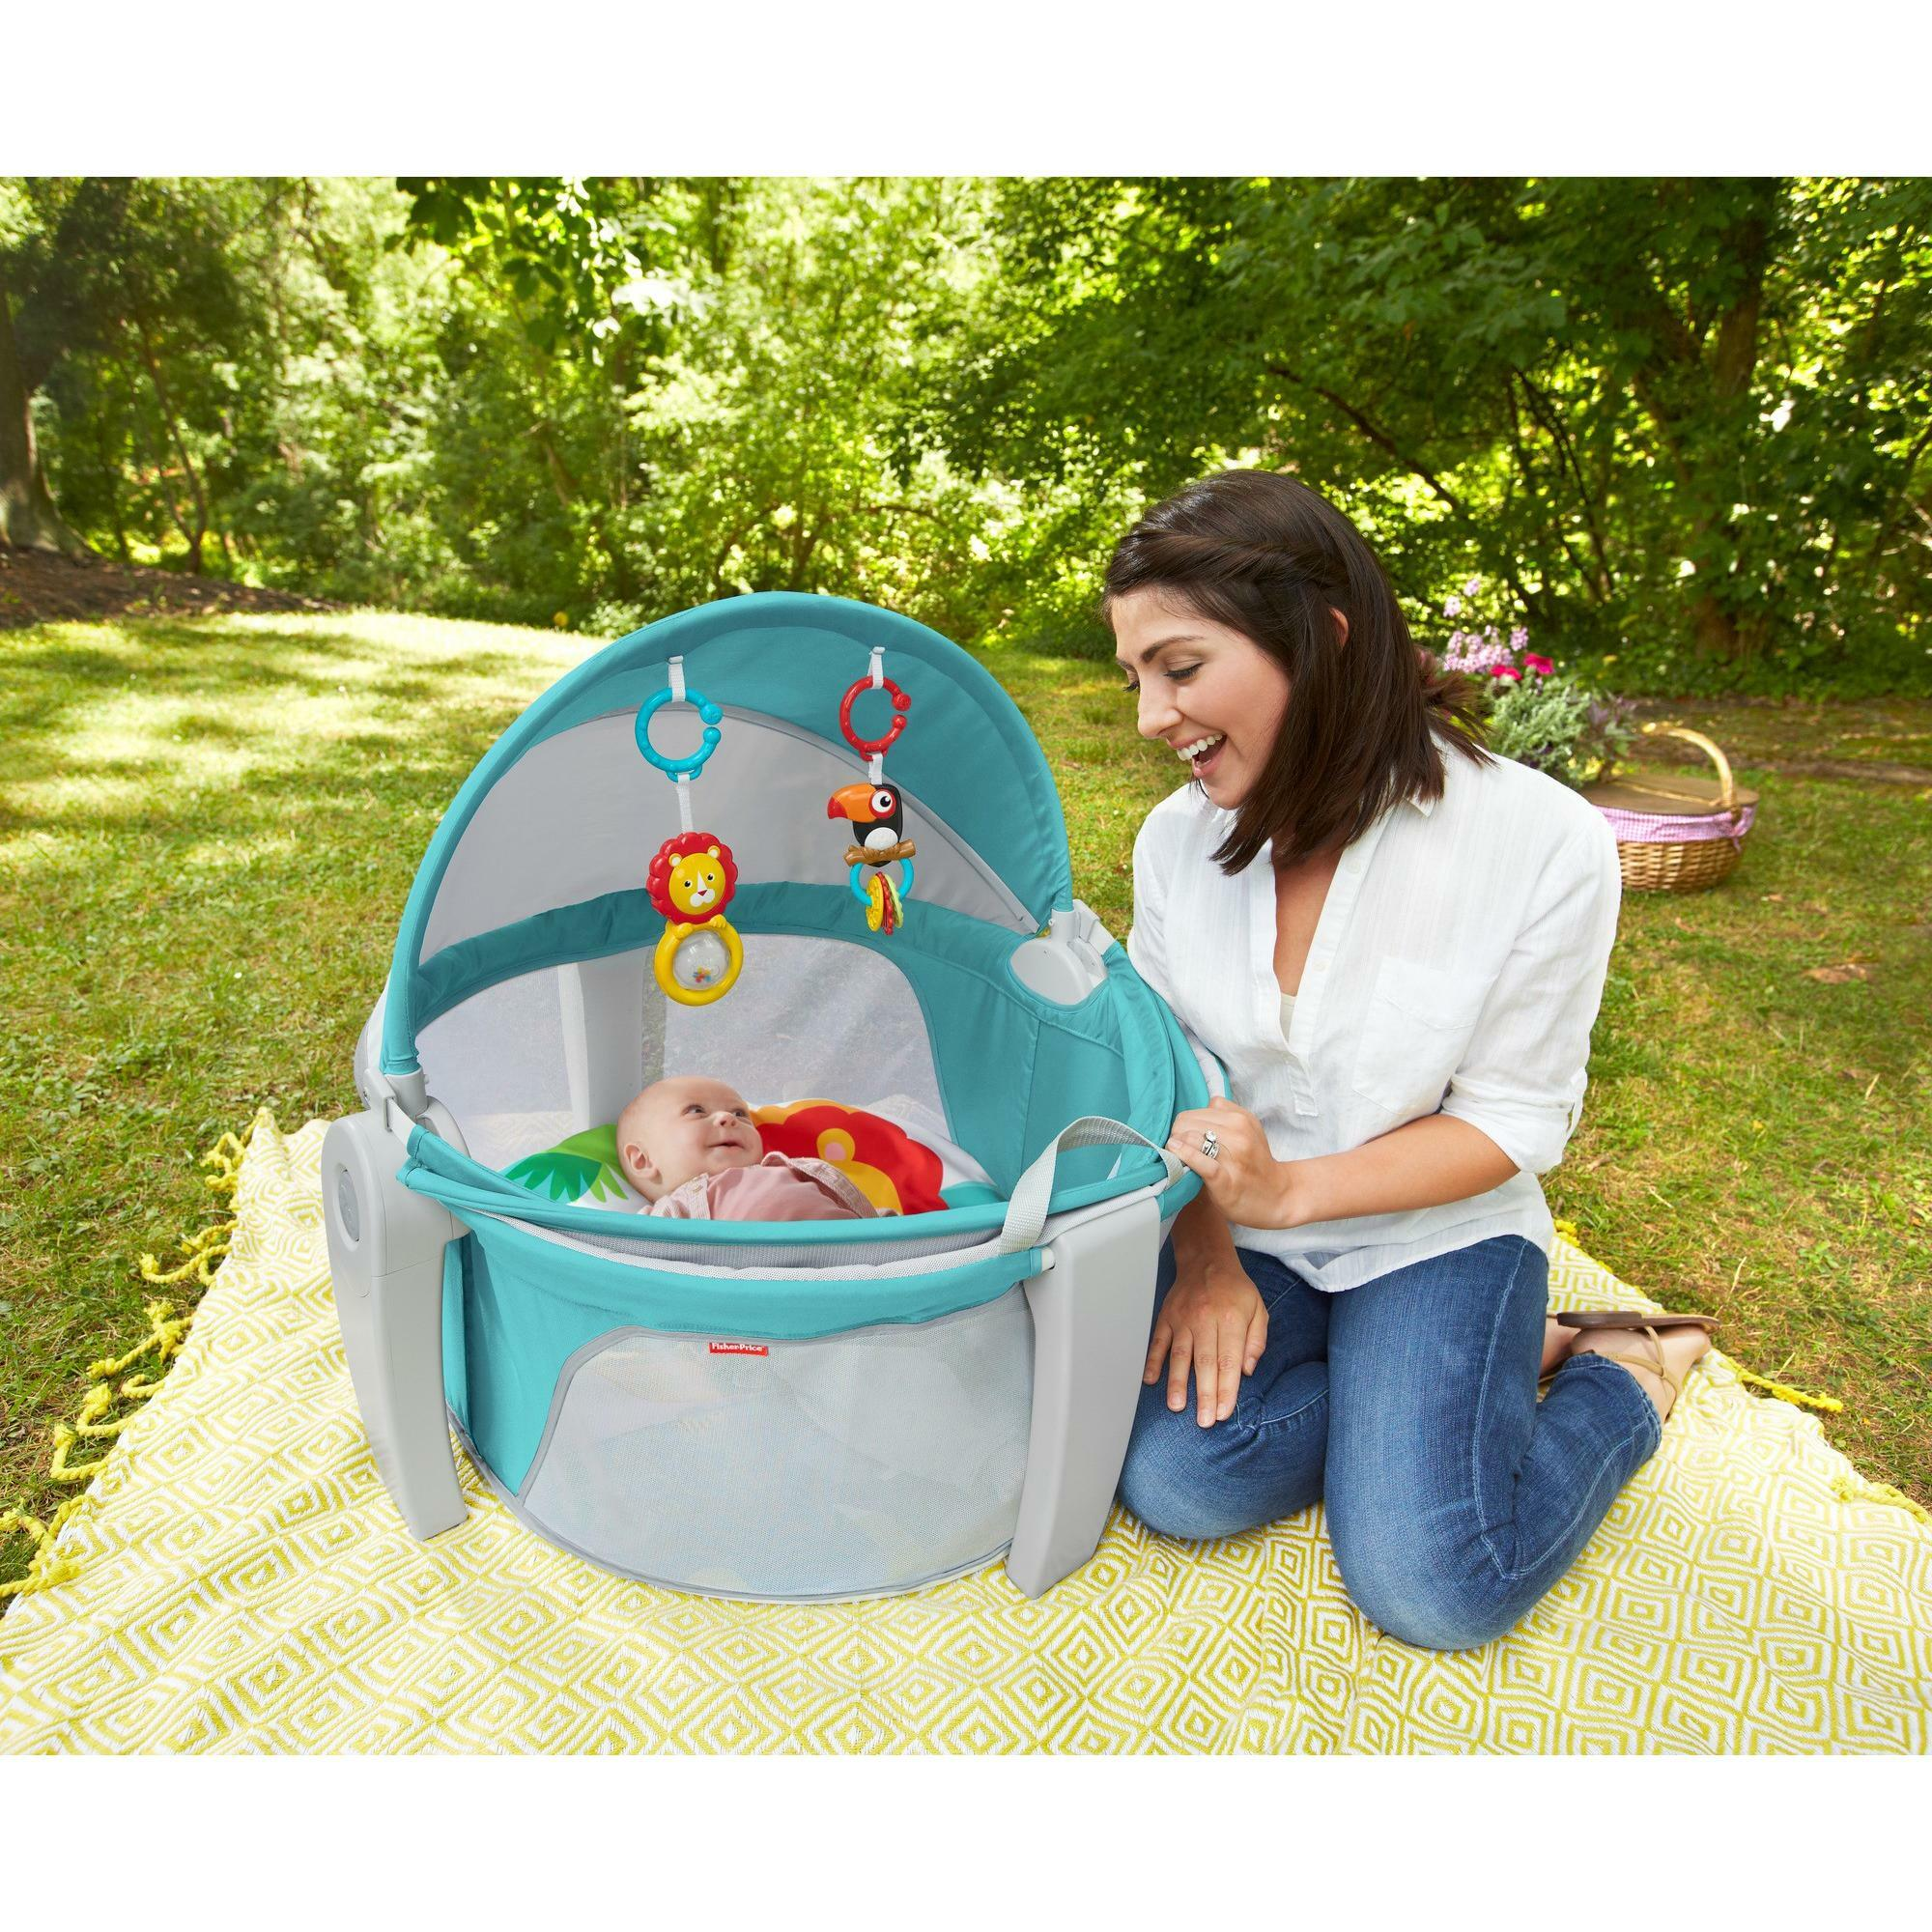 Drf35 On The Go Baby Dome From Fisher Price The Bump